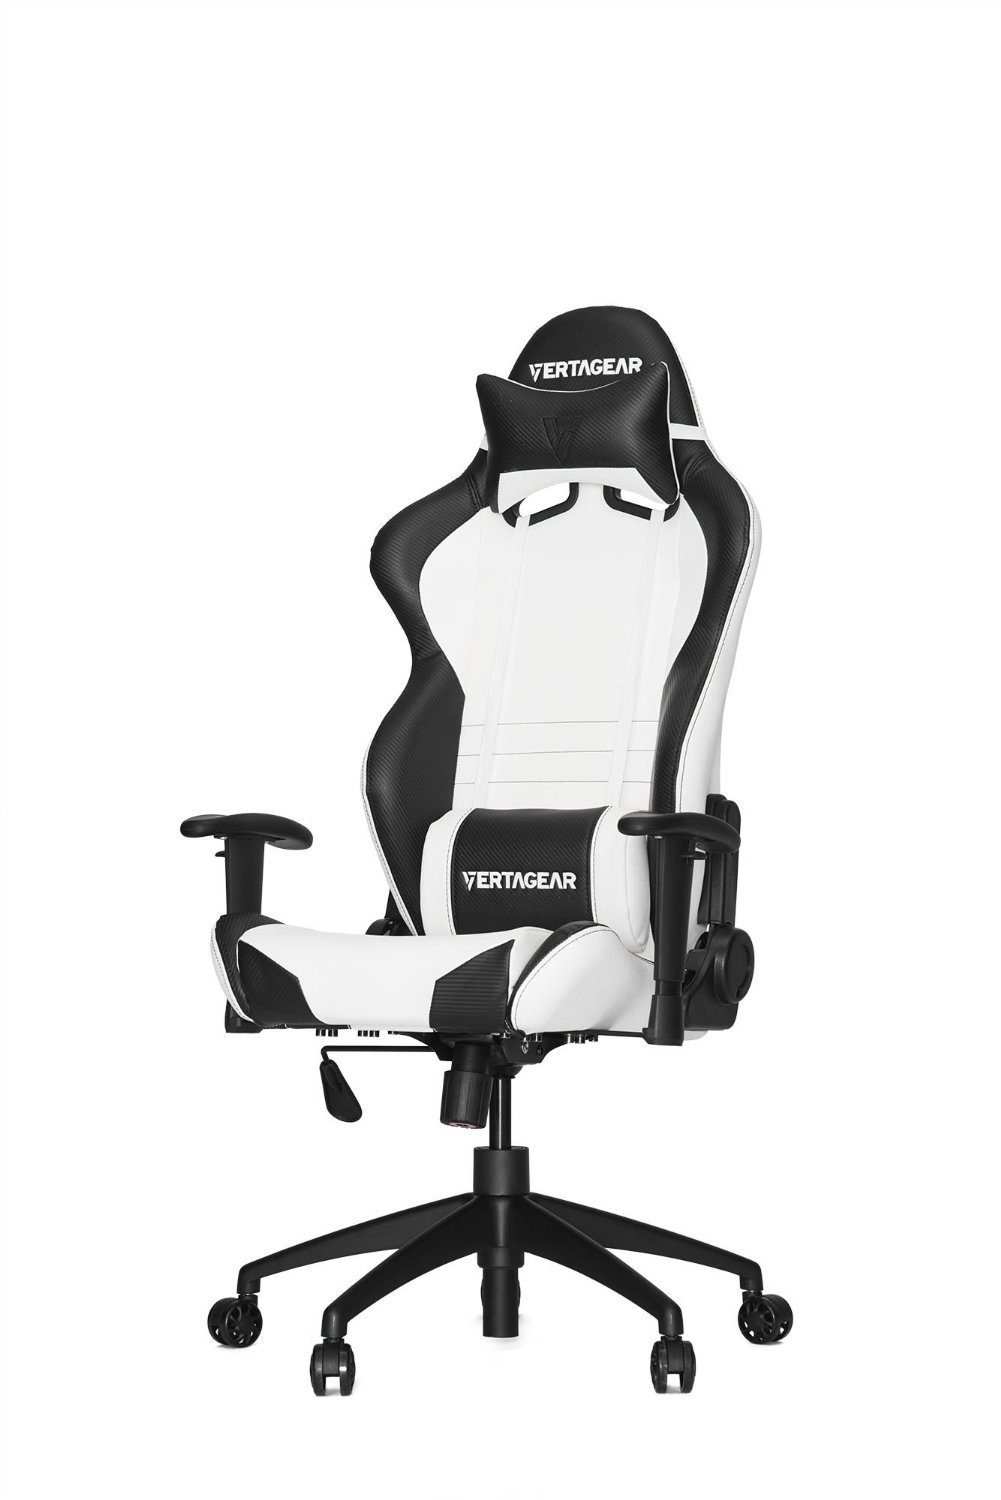 Magnificent Pc Chairs Finest Vertagear Sl2000 Review Pdpeps Interior Chair Design Pdpepsorg